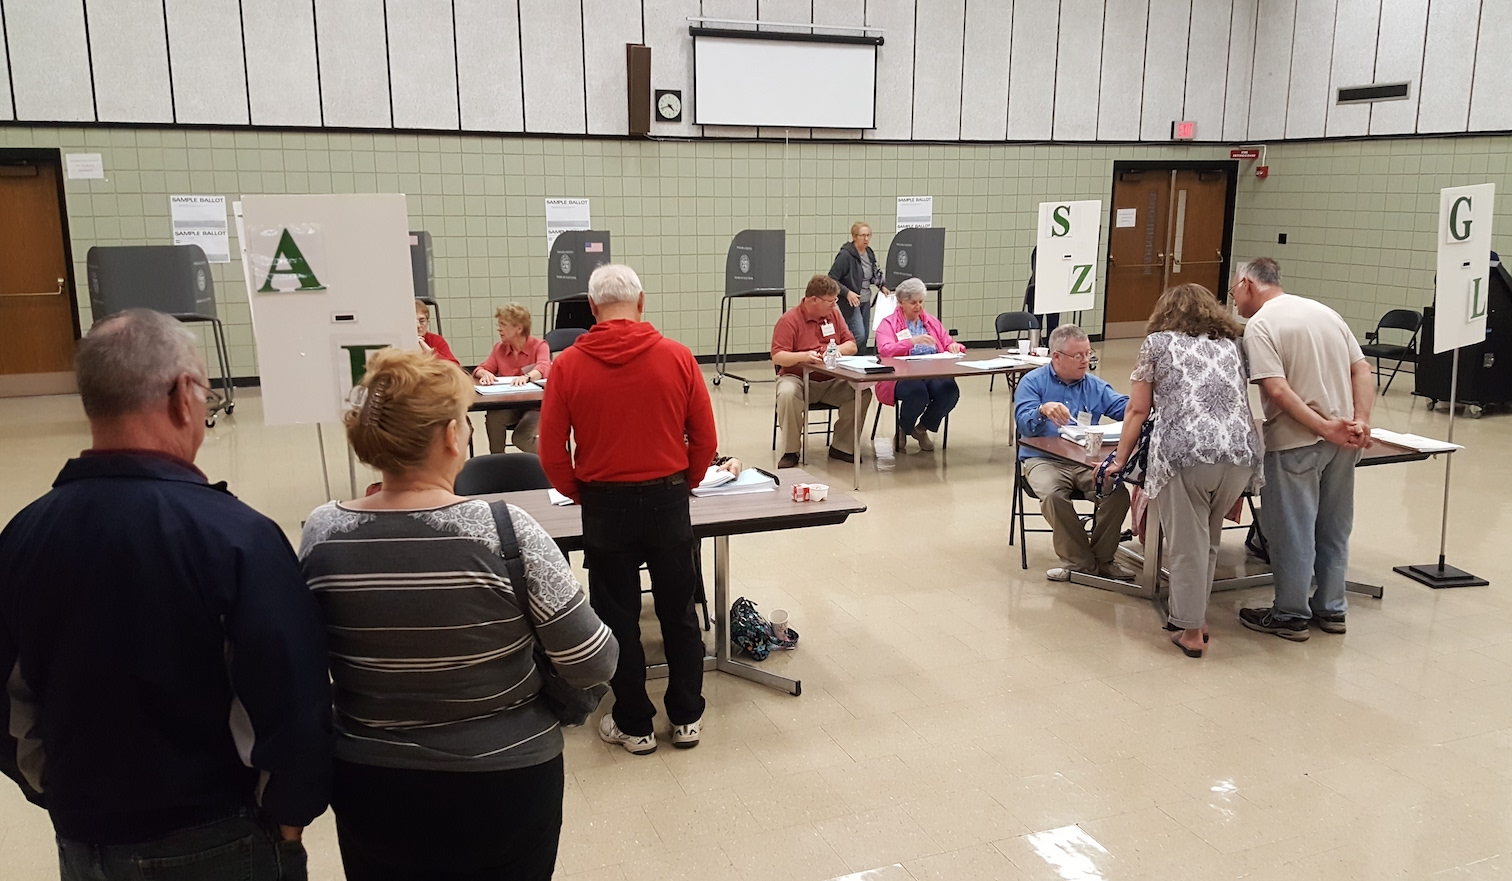 Lewiston-Porter voters cast their ballots Tuesday in the Community Resource Center. (Photo by Terry Duffy)